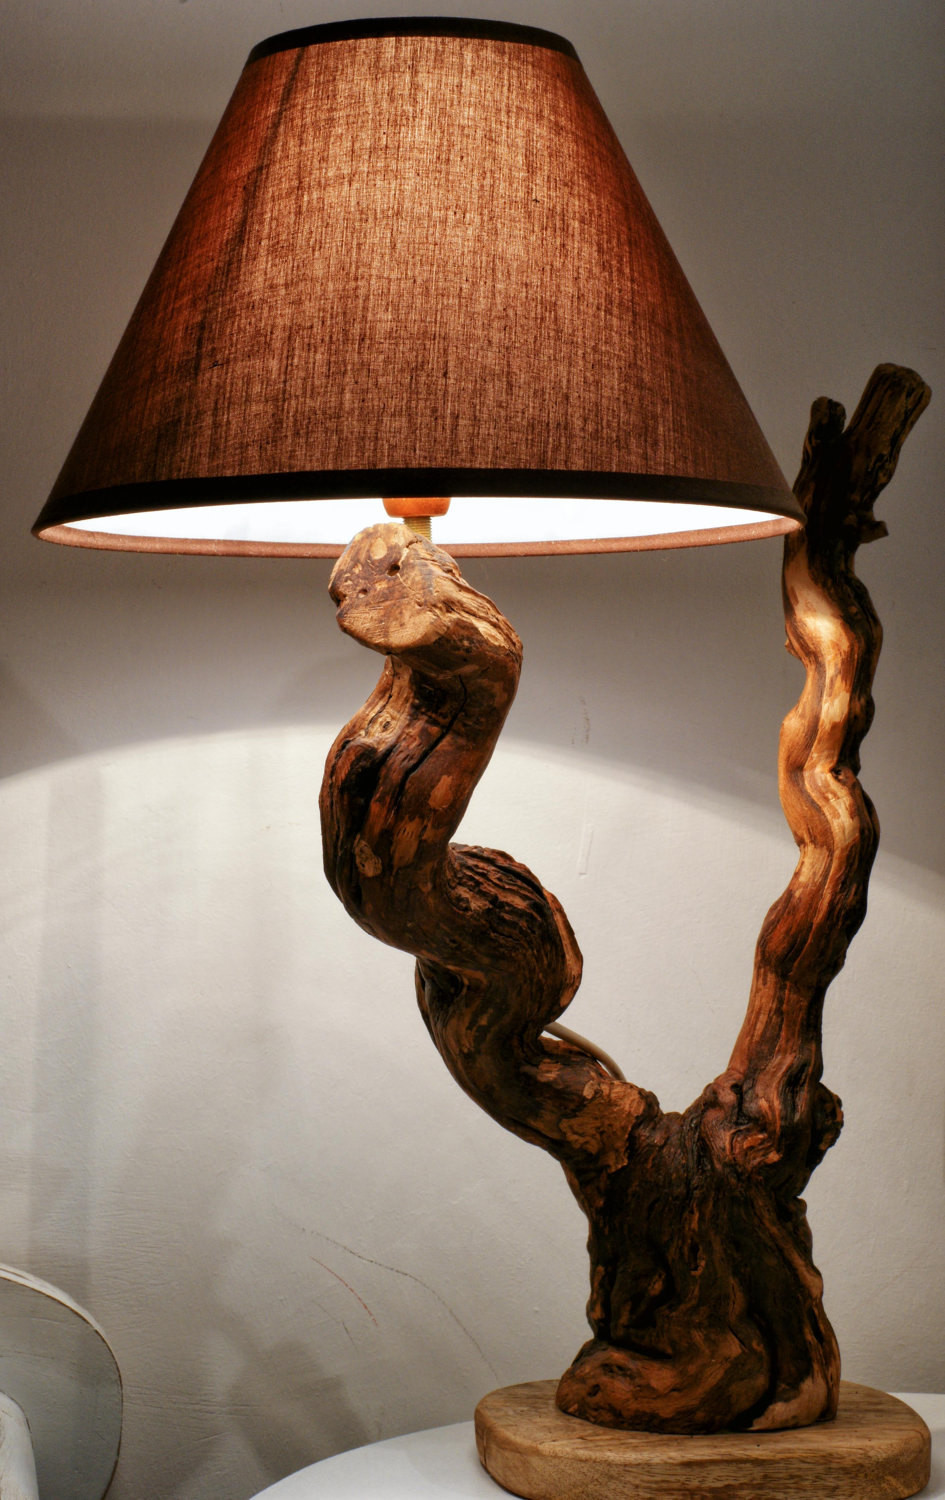 Wooden Lamp Designs Driftwood Lamp Sculpture Natural Design Driftwood